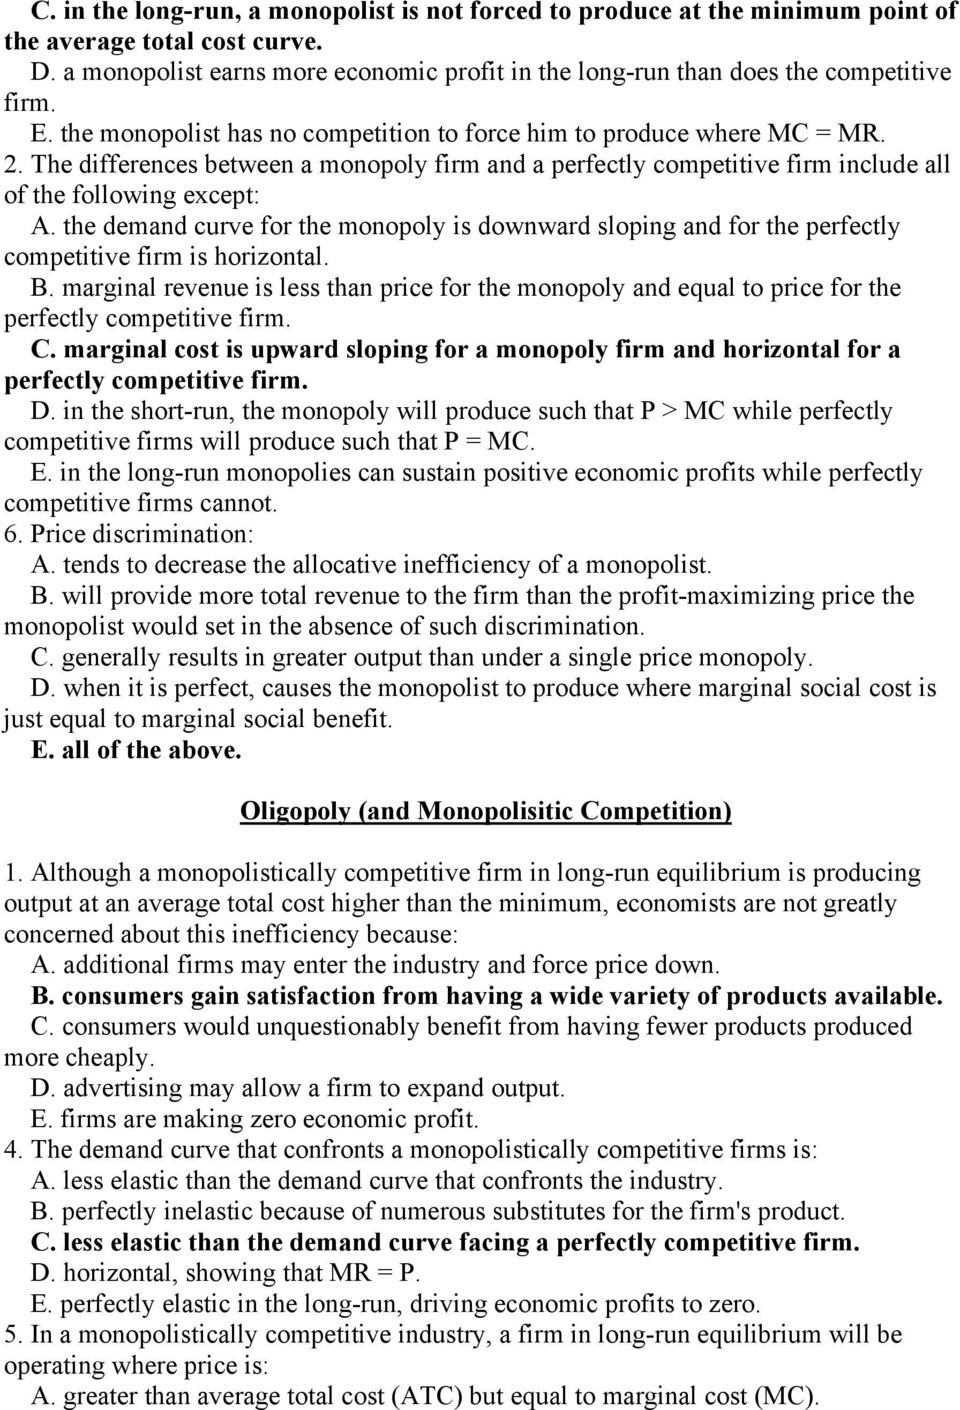 The differences between a monopoly firm and a perfectly competitive firm include all of the following except: A.